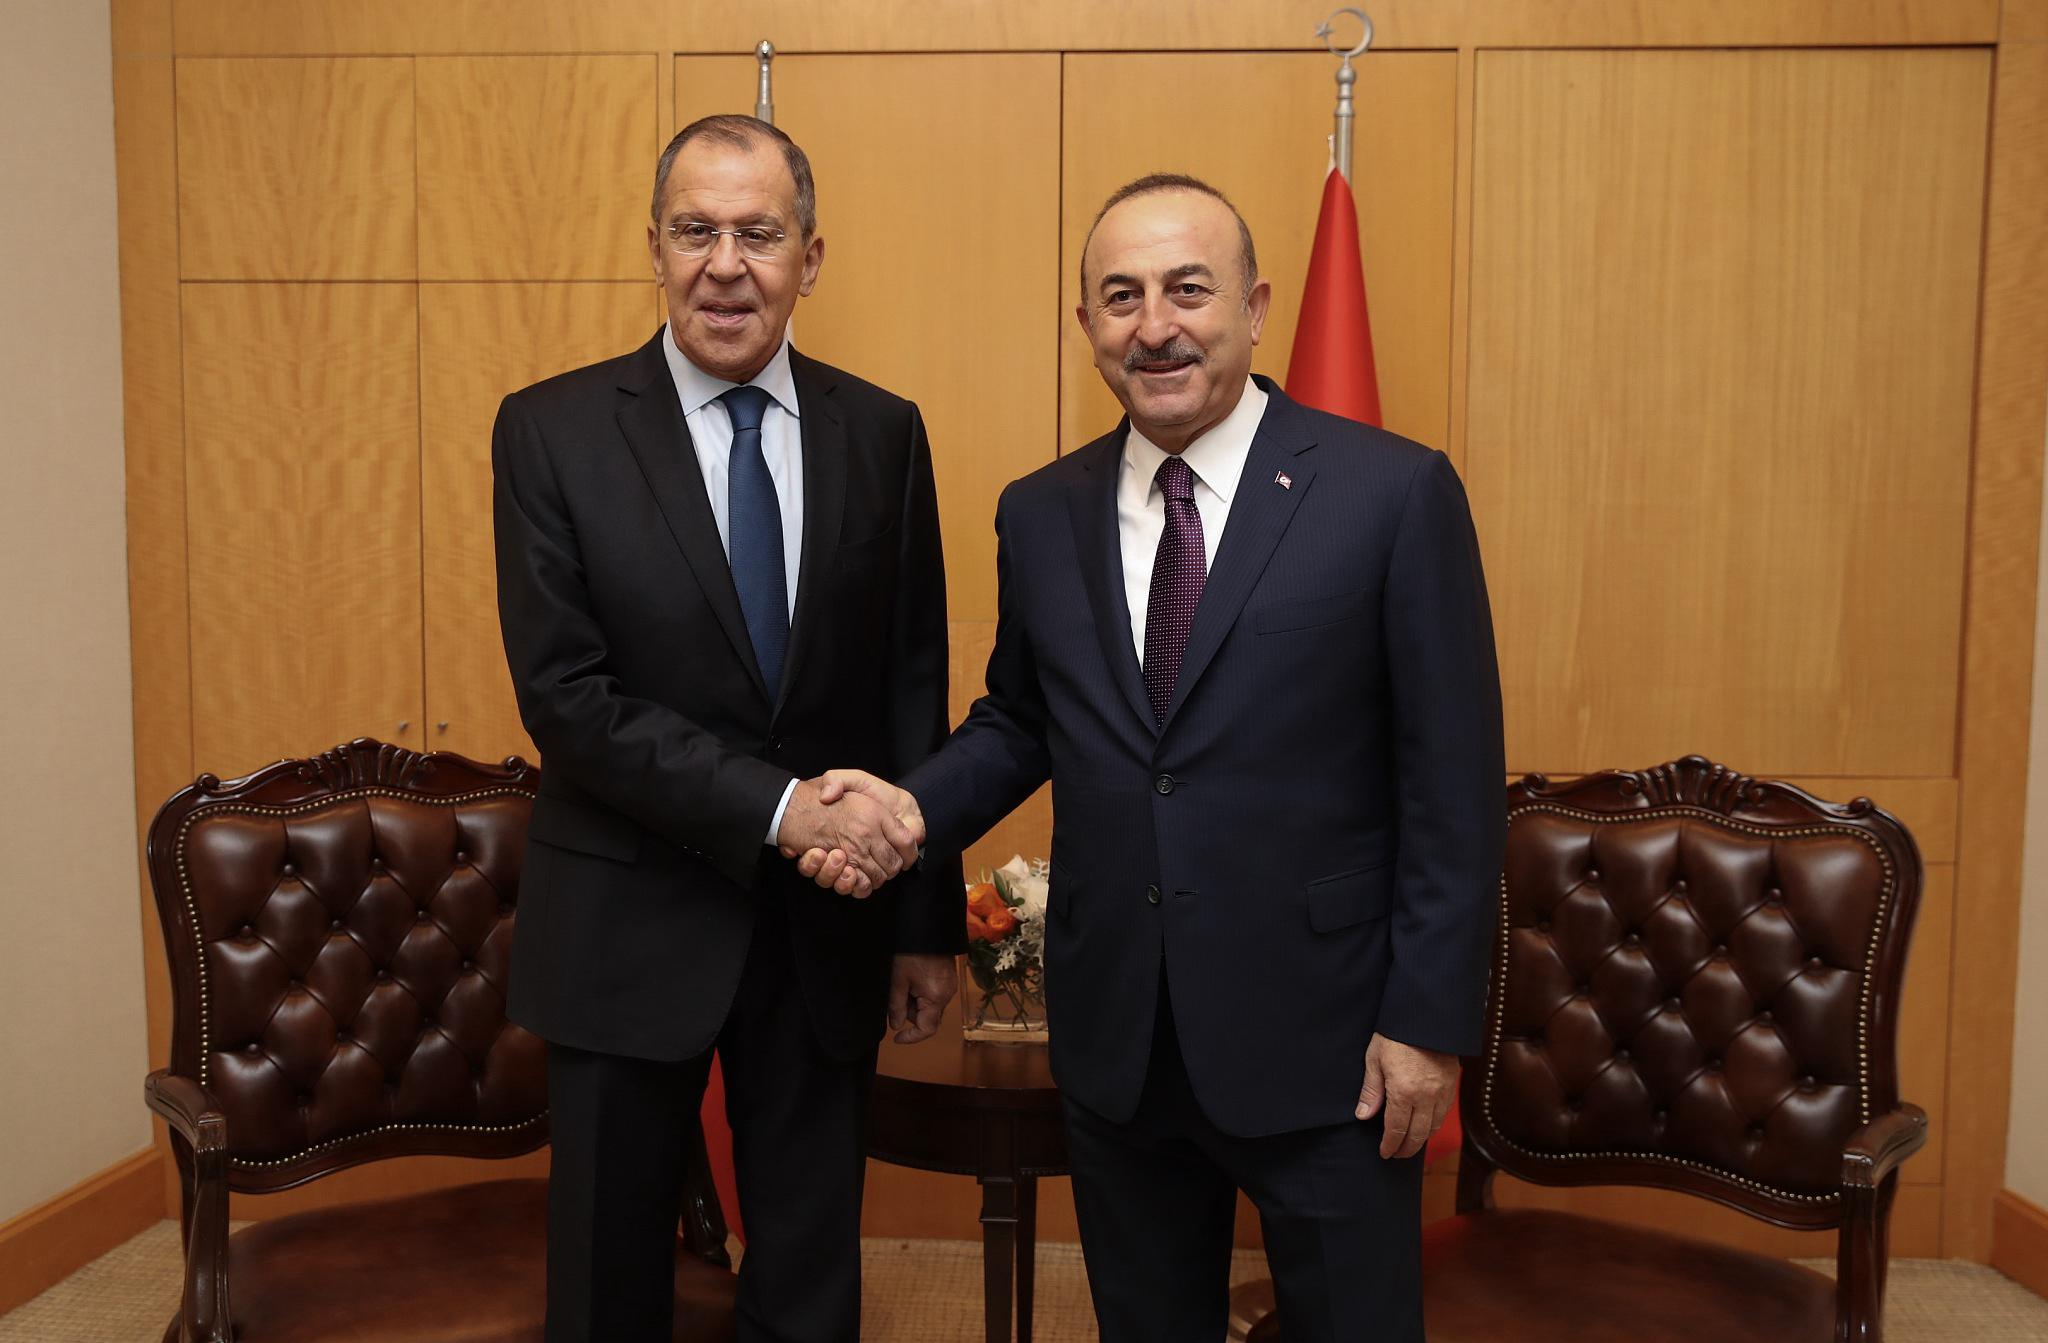 Turkey hosts Syria summit with Russian, French, German leaders